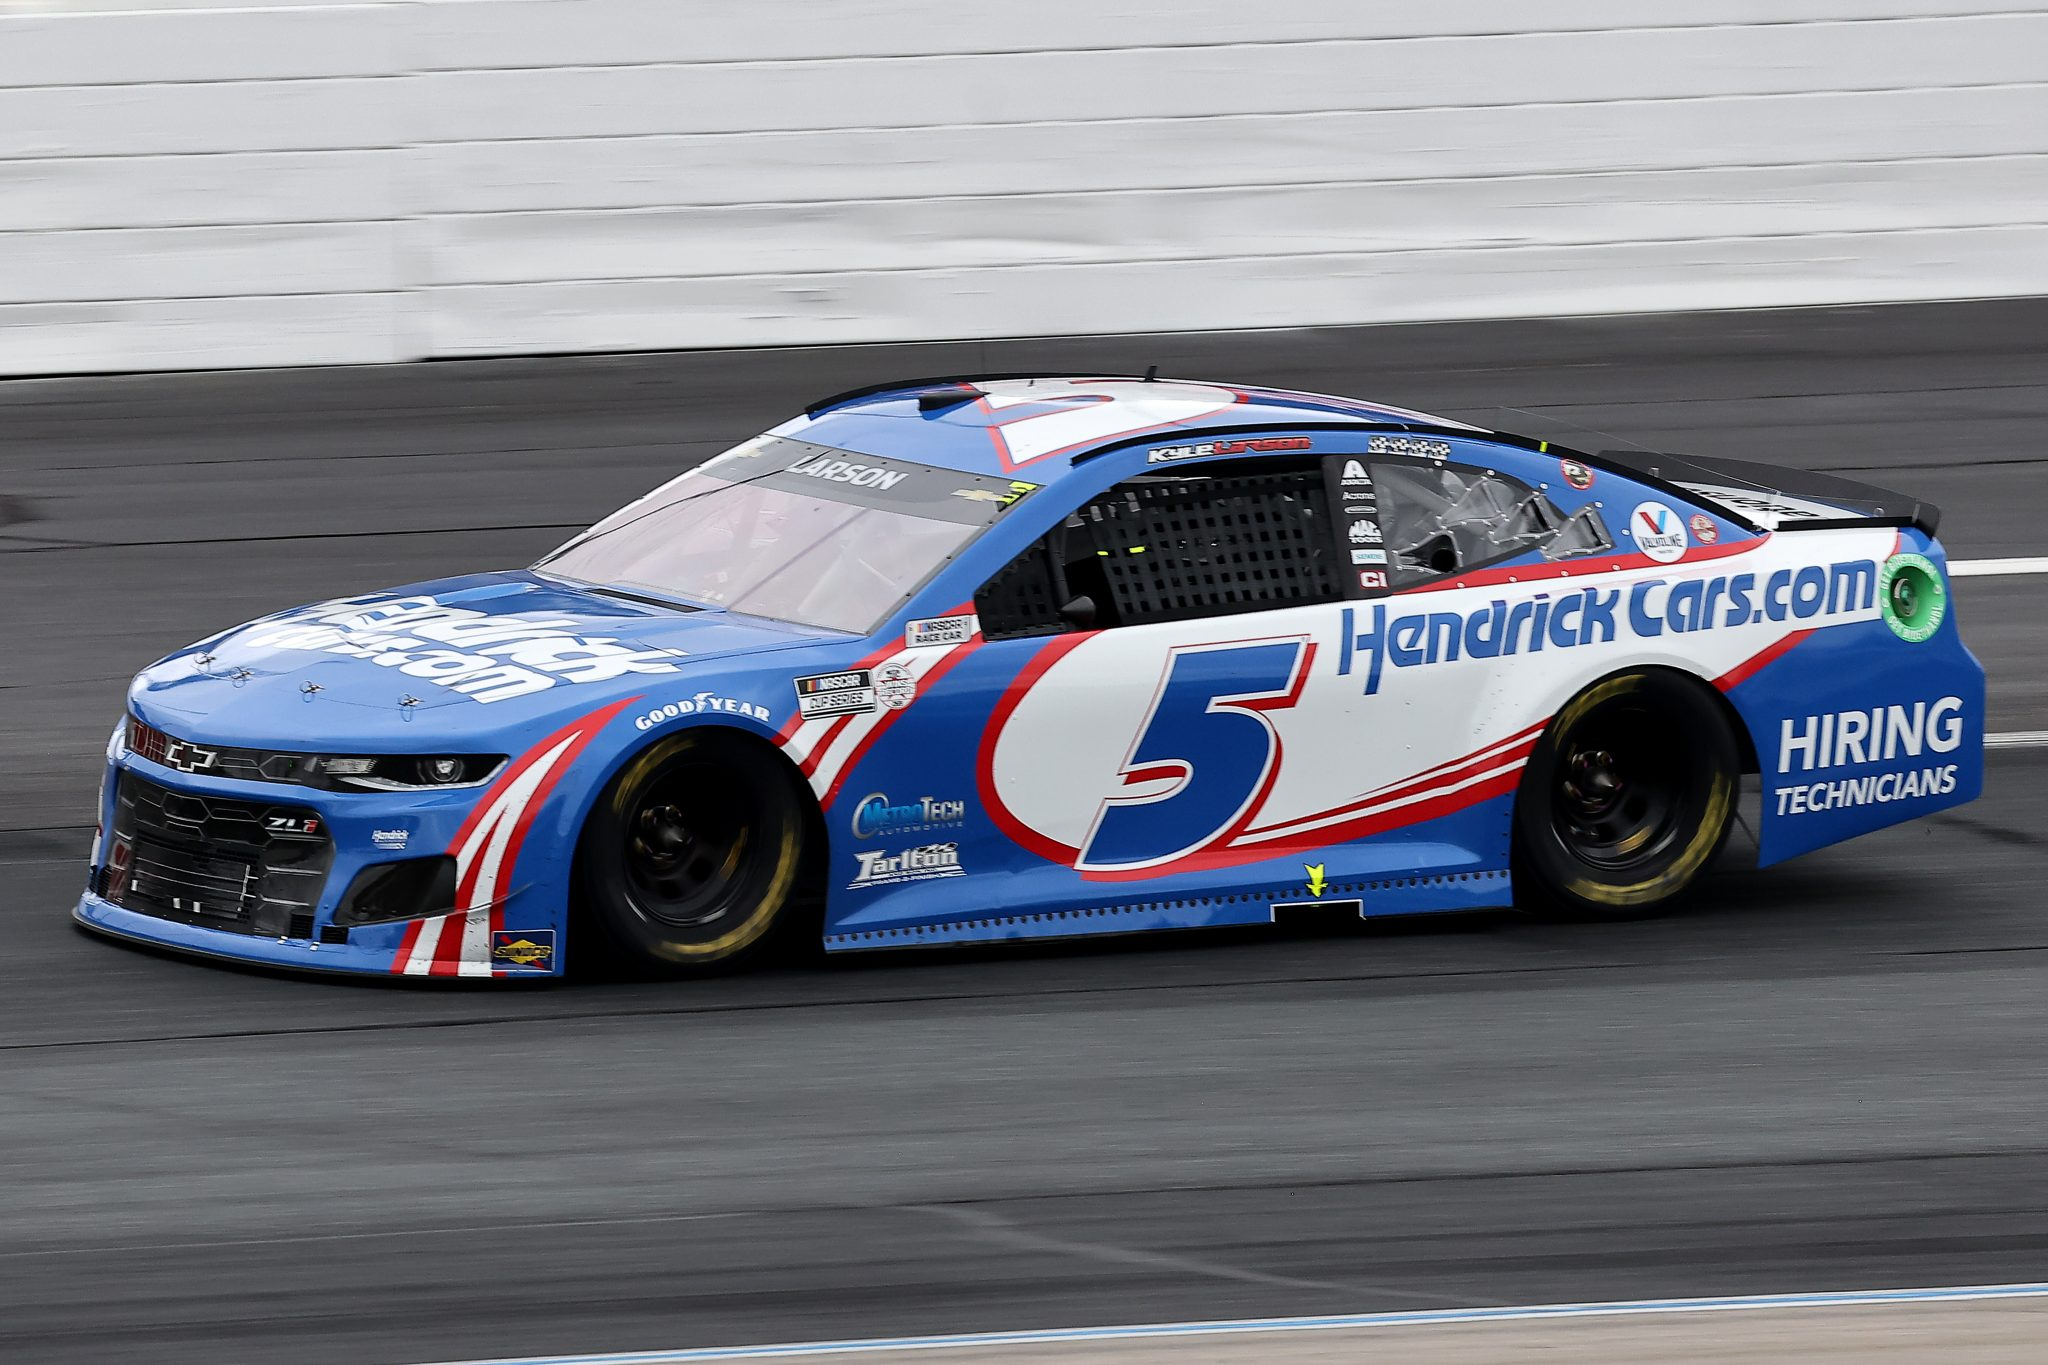 LOUDON, NEW HAMPSHIRE - JULY 18: Kyle Larson, driver of the #5 HendrickCars.com Chevrolet, drives during the NASCAR Cup Series Foxwoods Resort Casino 301 at New Hampshire Motor Speedway on July 18, 2021 in Loudon, New Hampshire. (Photo by James Gilbert/Getty Images)   Getty Images